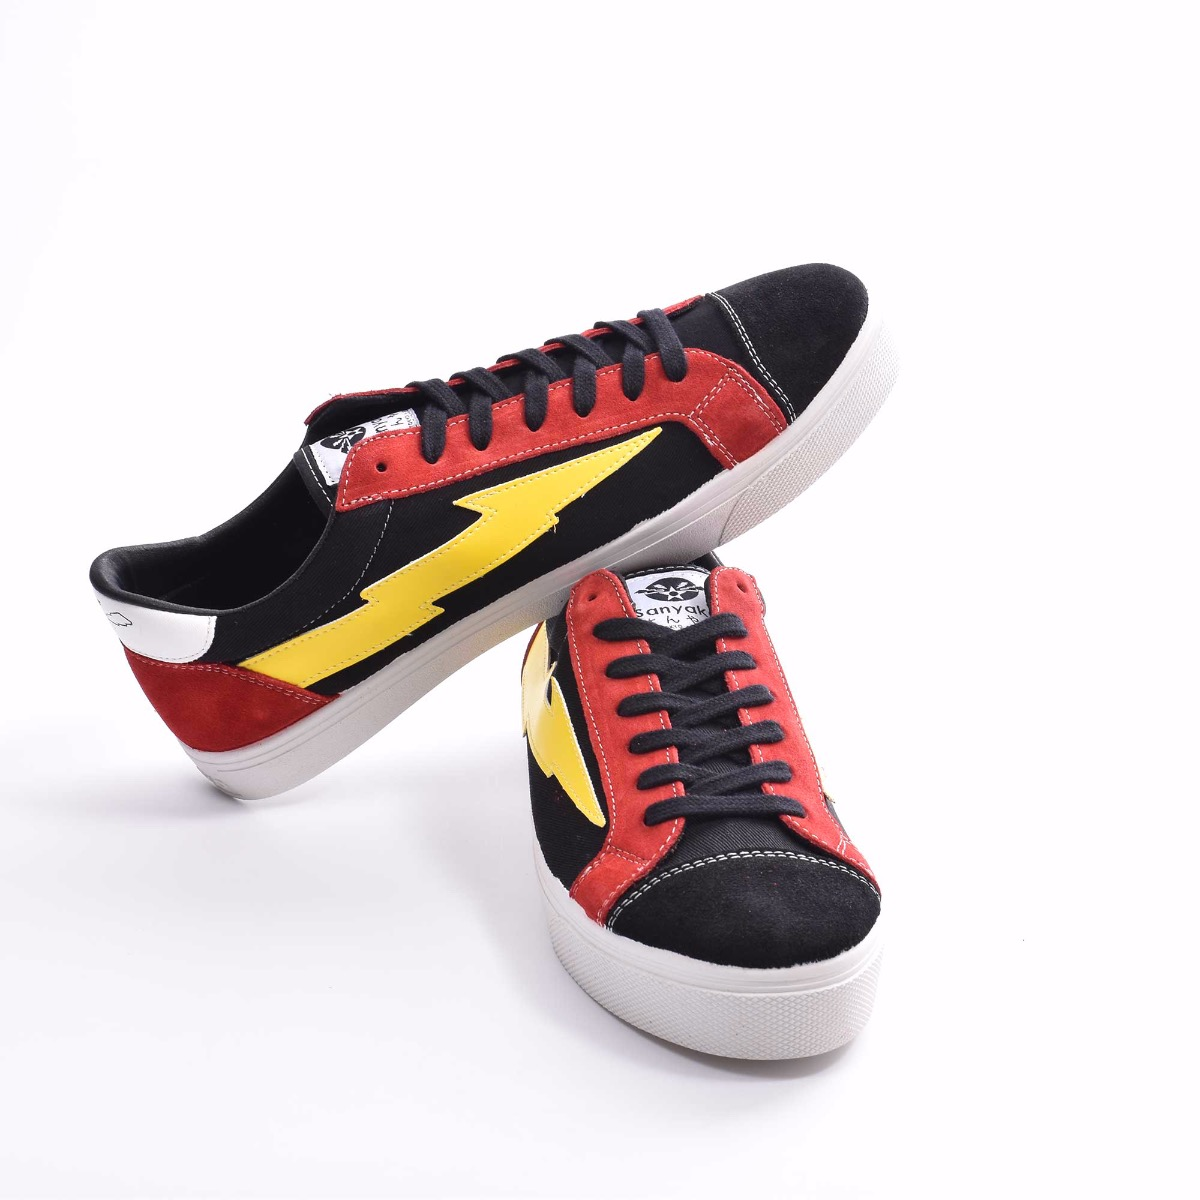 Thunderbolt limited edition - Nero/rosso